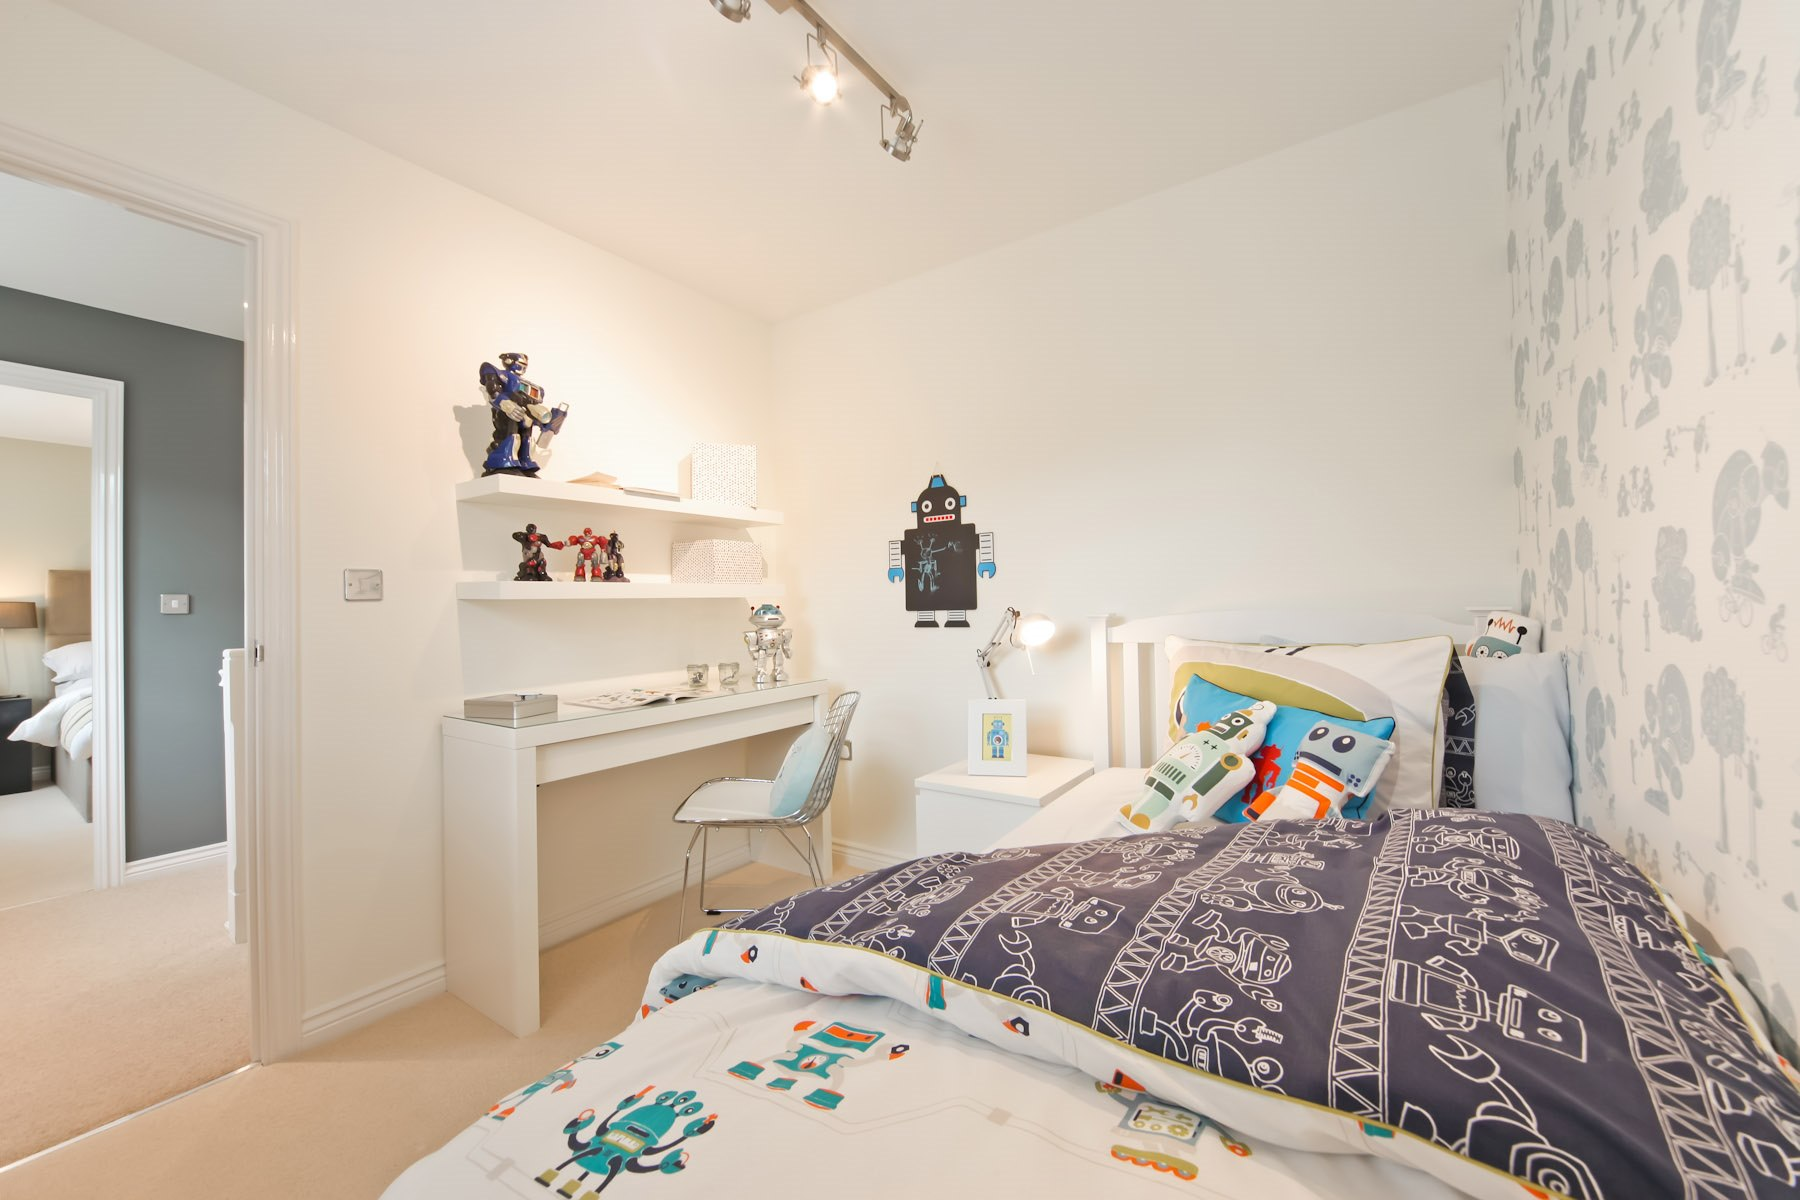 022_BH_Downham_Bedroom_4